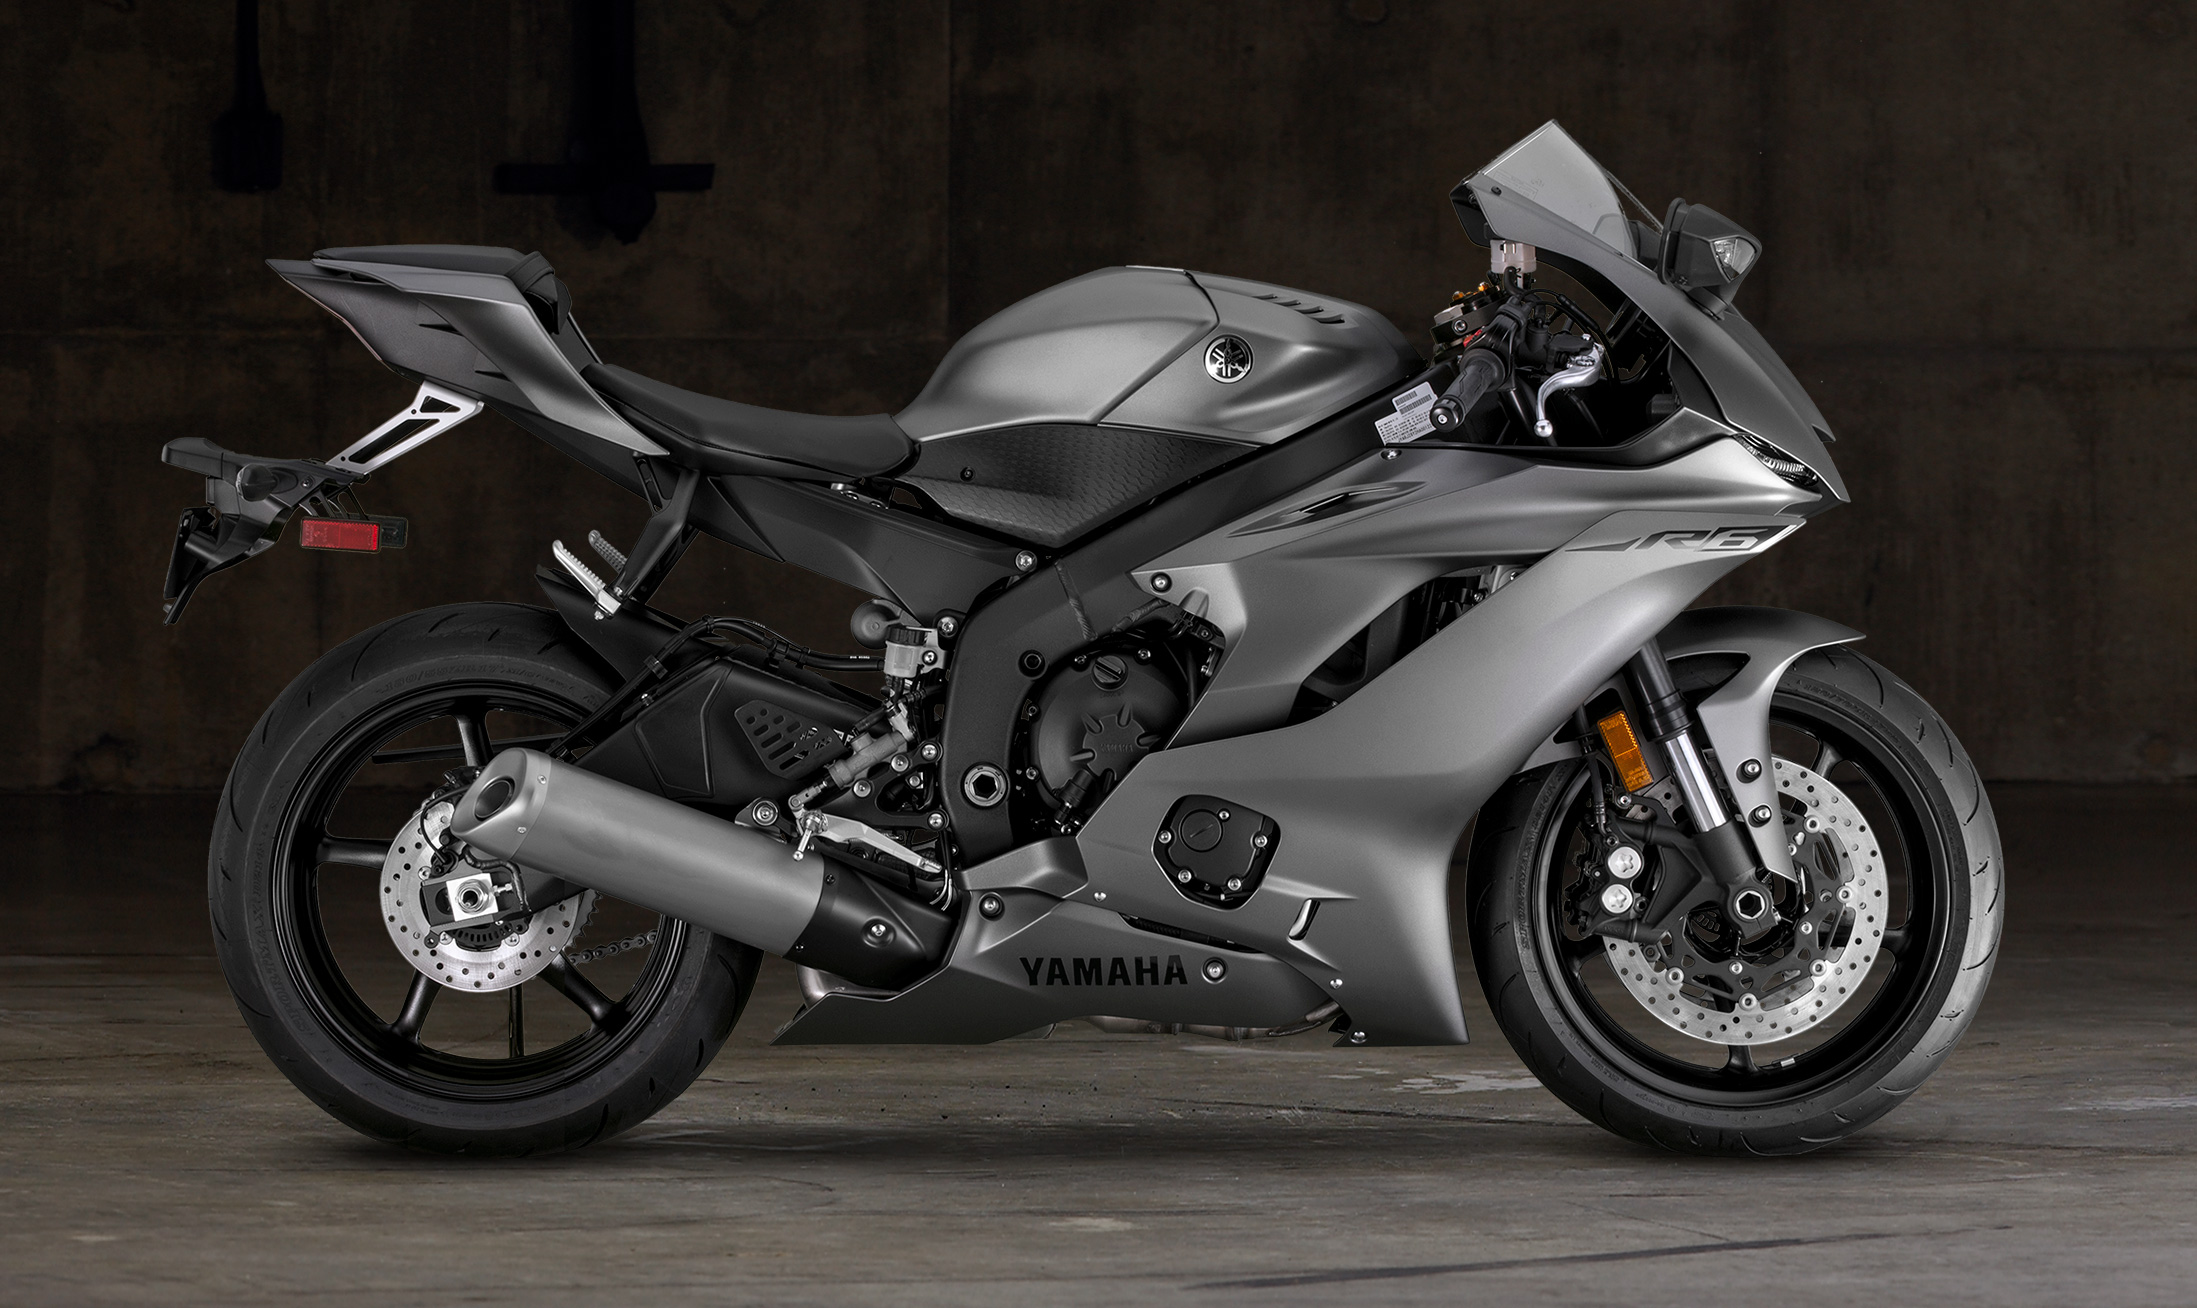 2018 Yamaha Yzf R6 Supersport Motorcycle 360 View